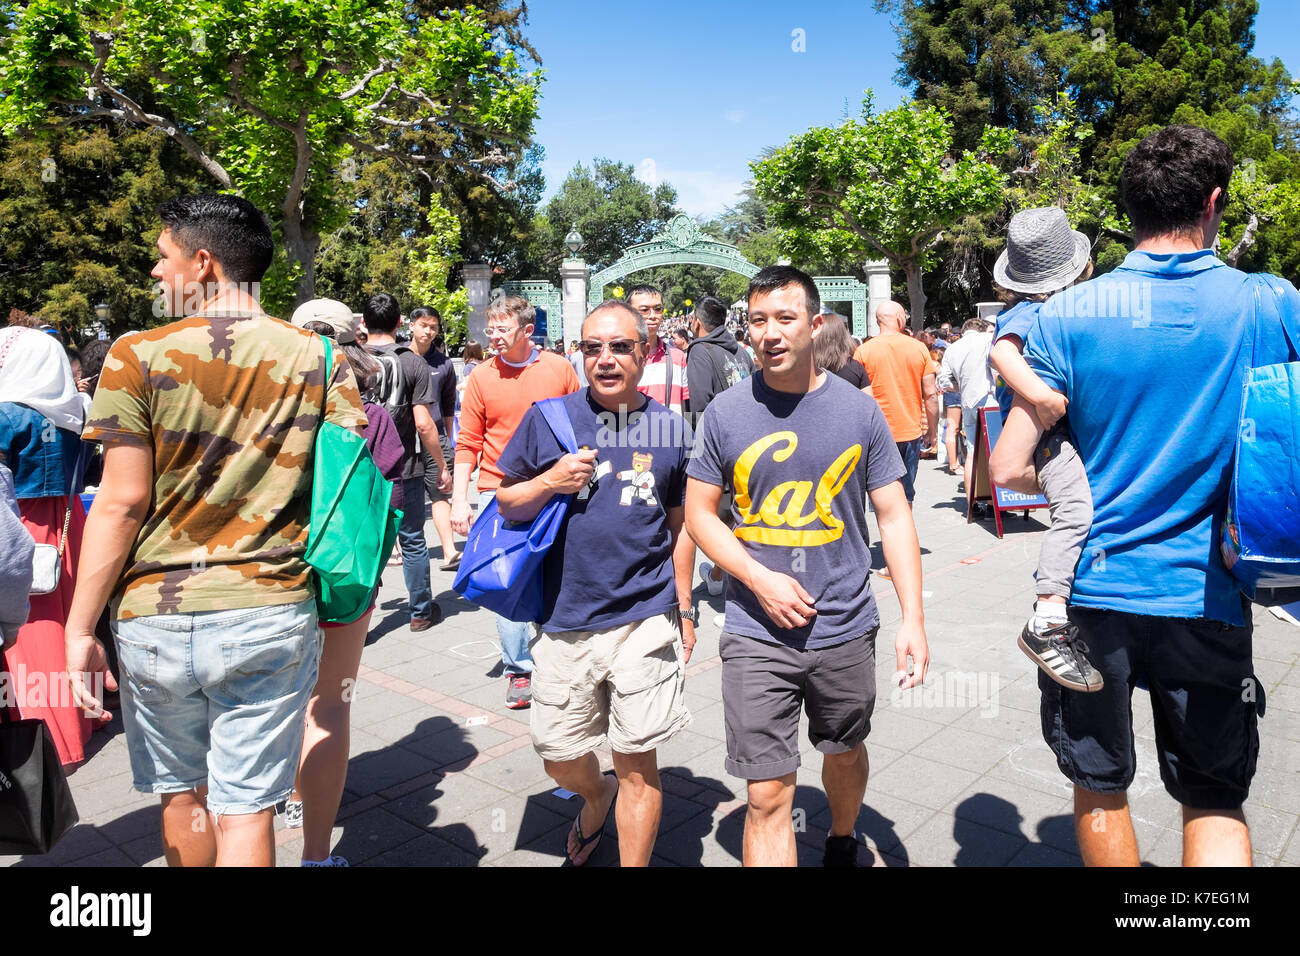 University of California Berkeley crowds of alumni, students and visitors on campus for Cal Day, the annual open Stock Photo